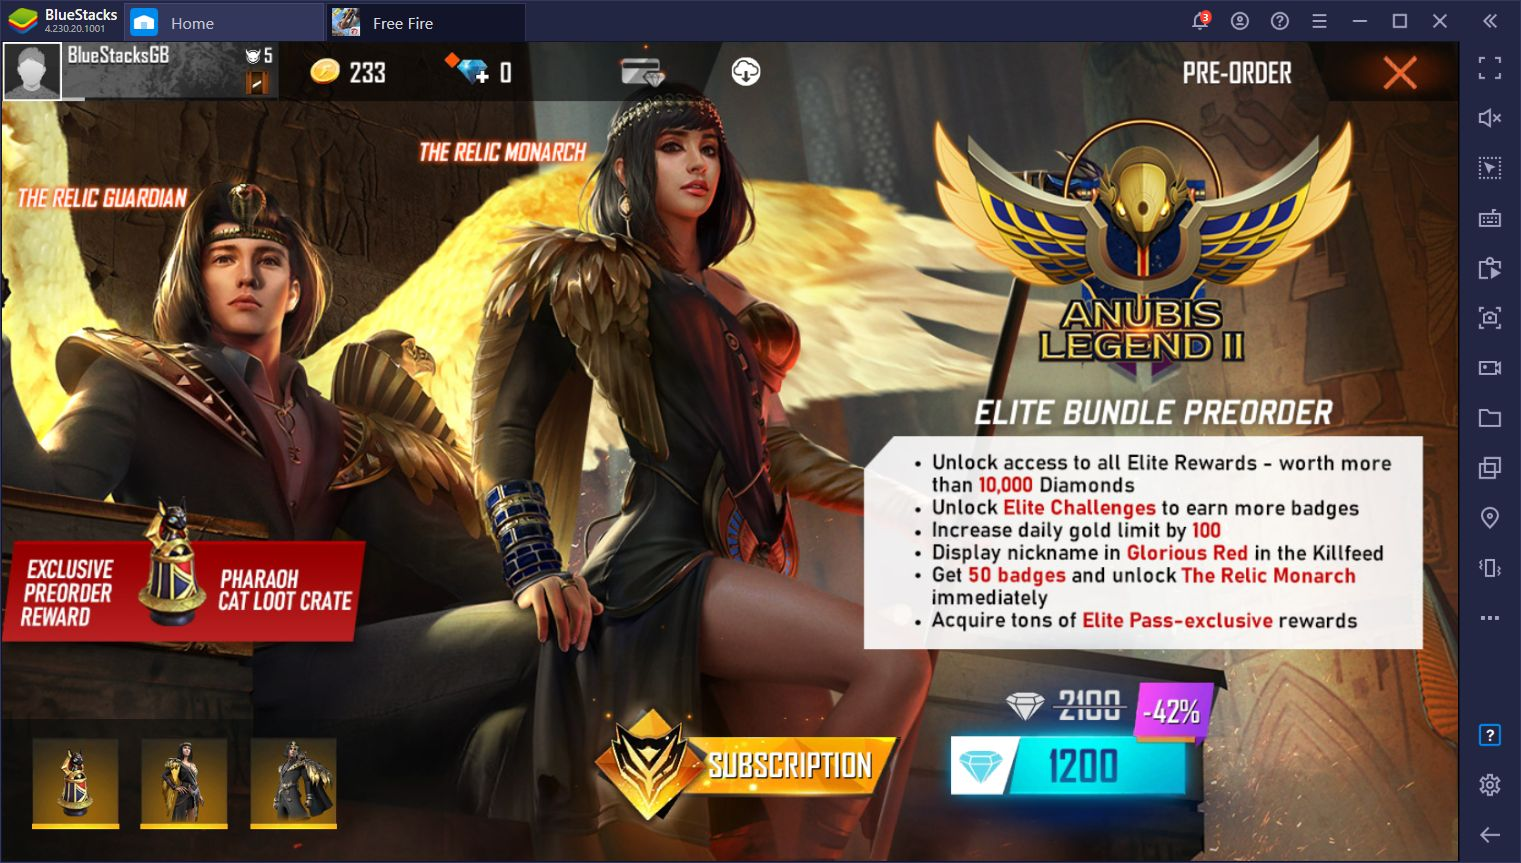 Free Fire 'Anubis Legend II' Elite Pass Brings Egyptian – Themed Rewards to the Popular Mobile Battle Royale